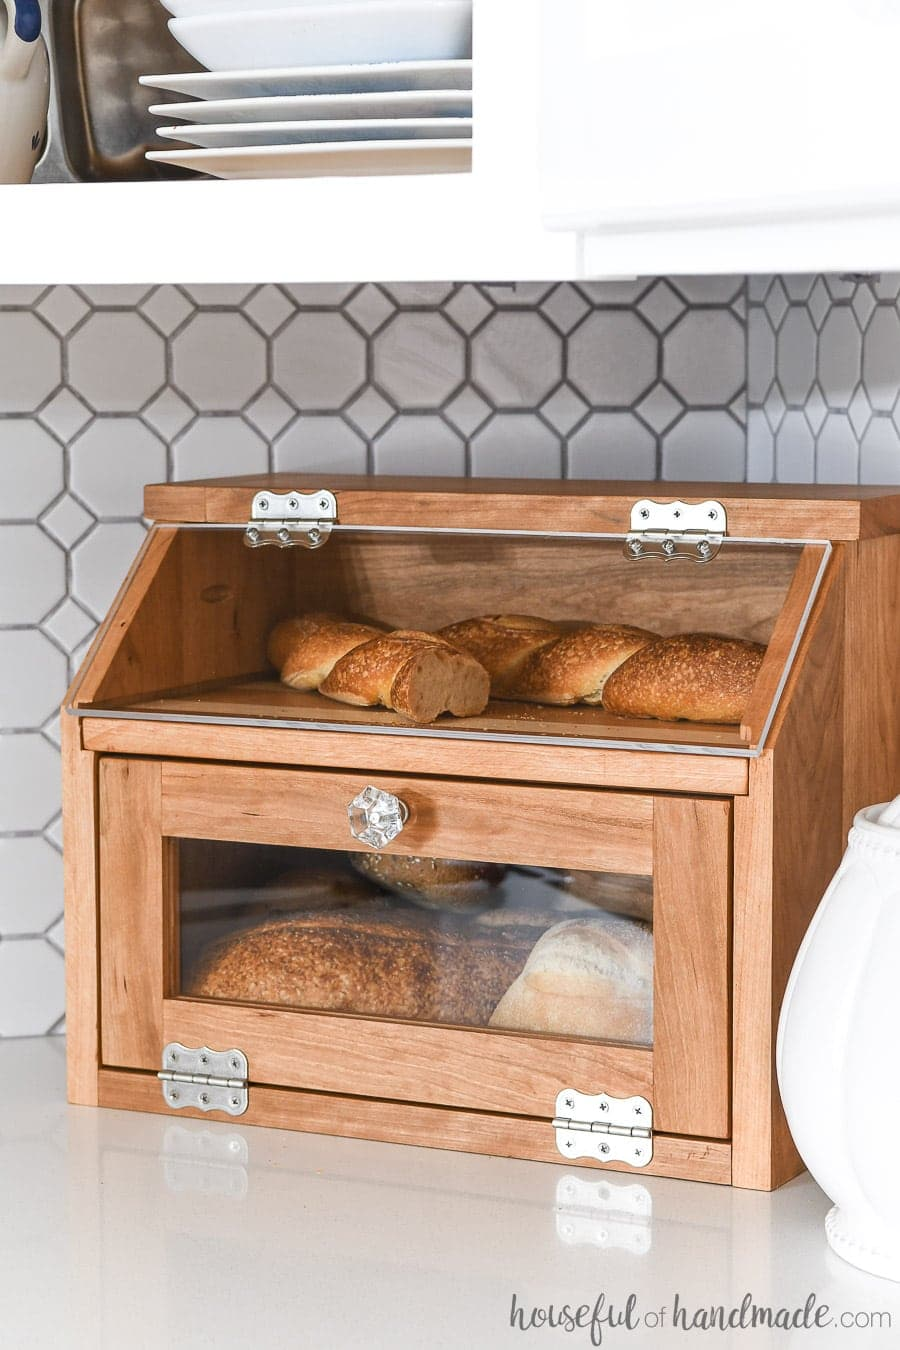 DIY bread box made of cherry wood with pull out cutting board shelf.